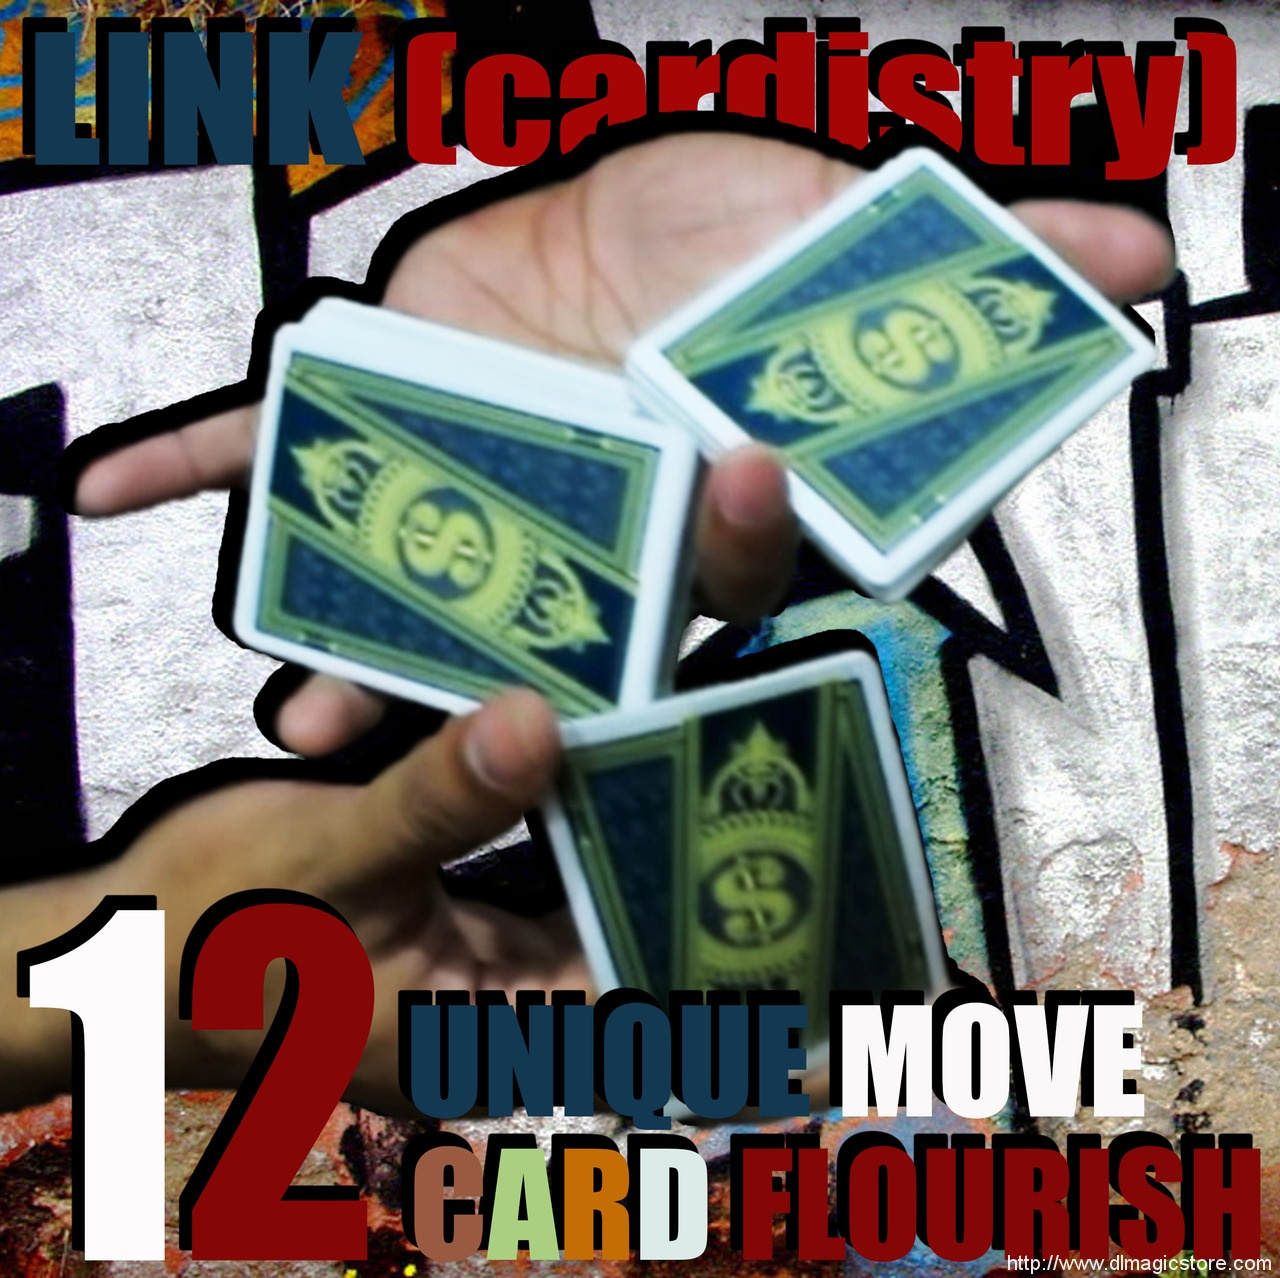 LINK (cardistry project) by SaysevenT (Instant Download)